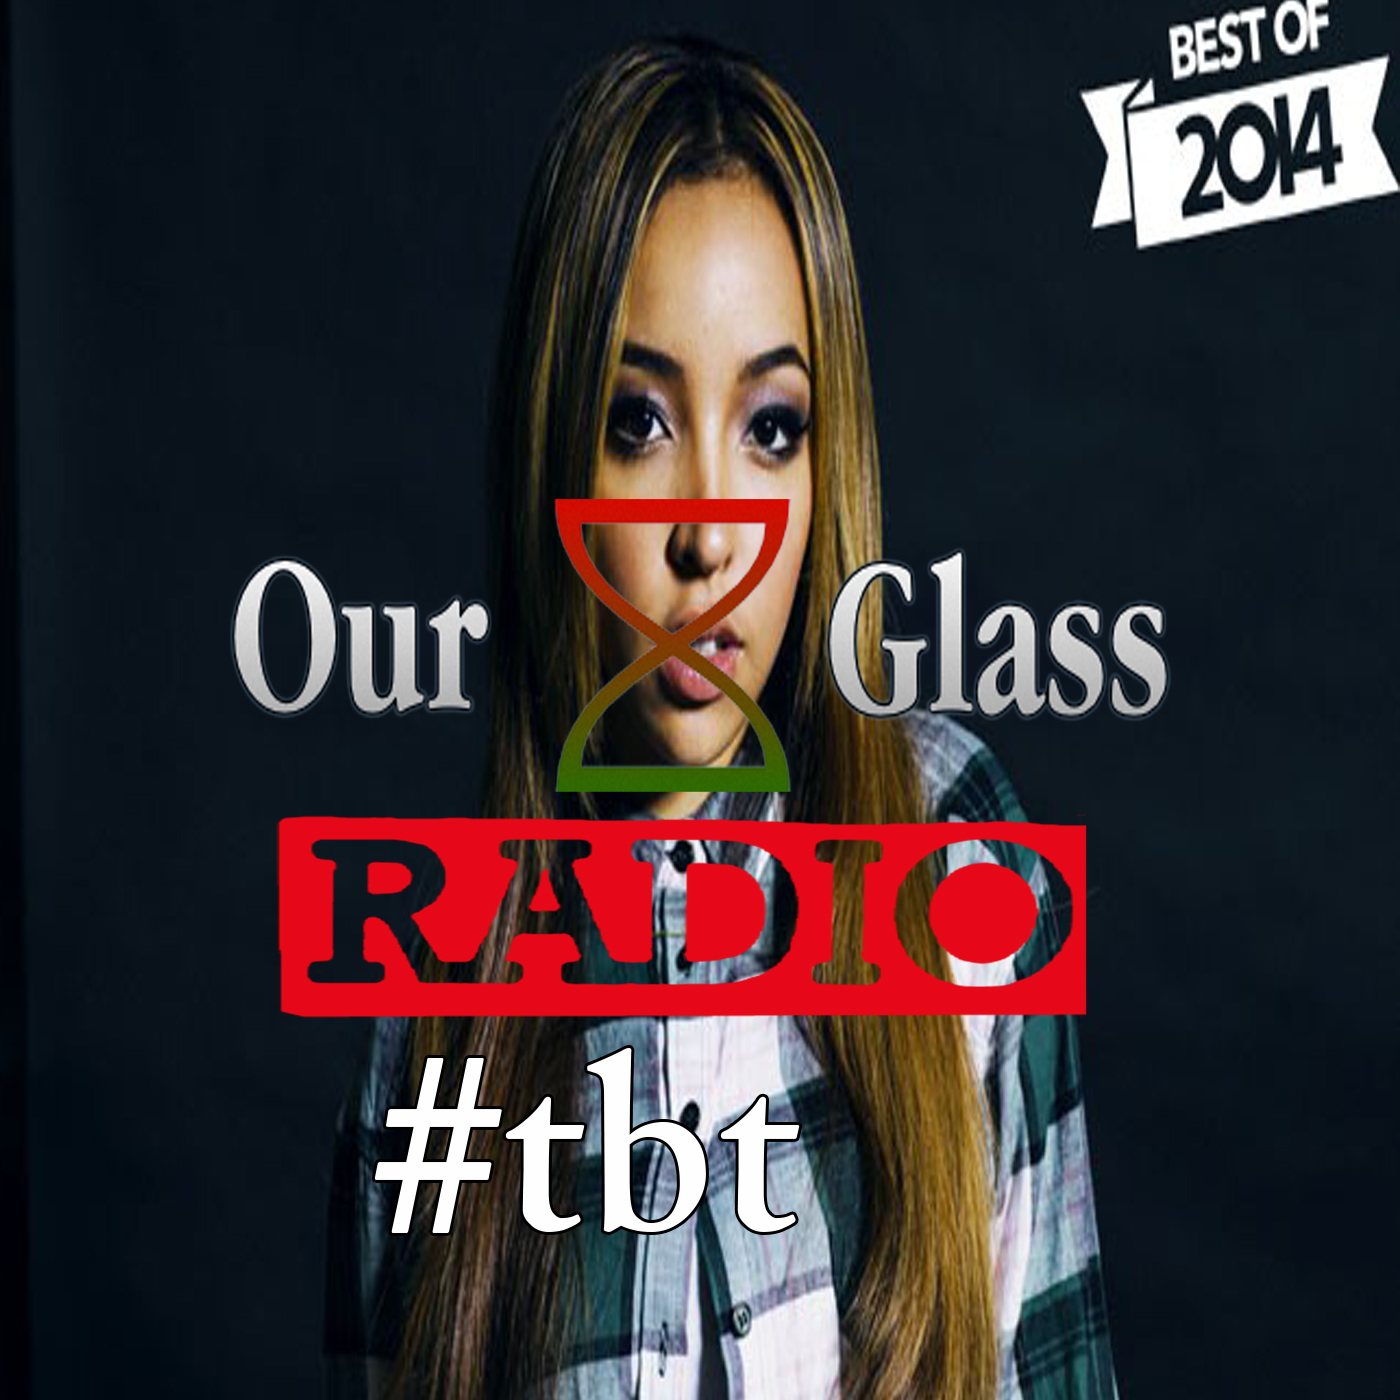 OurGlass Radio – 148 #2014 #hiphop #r&b